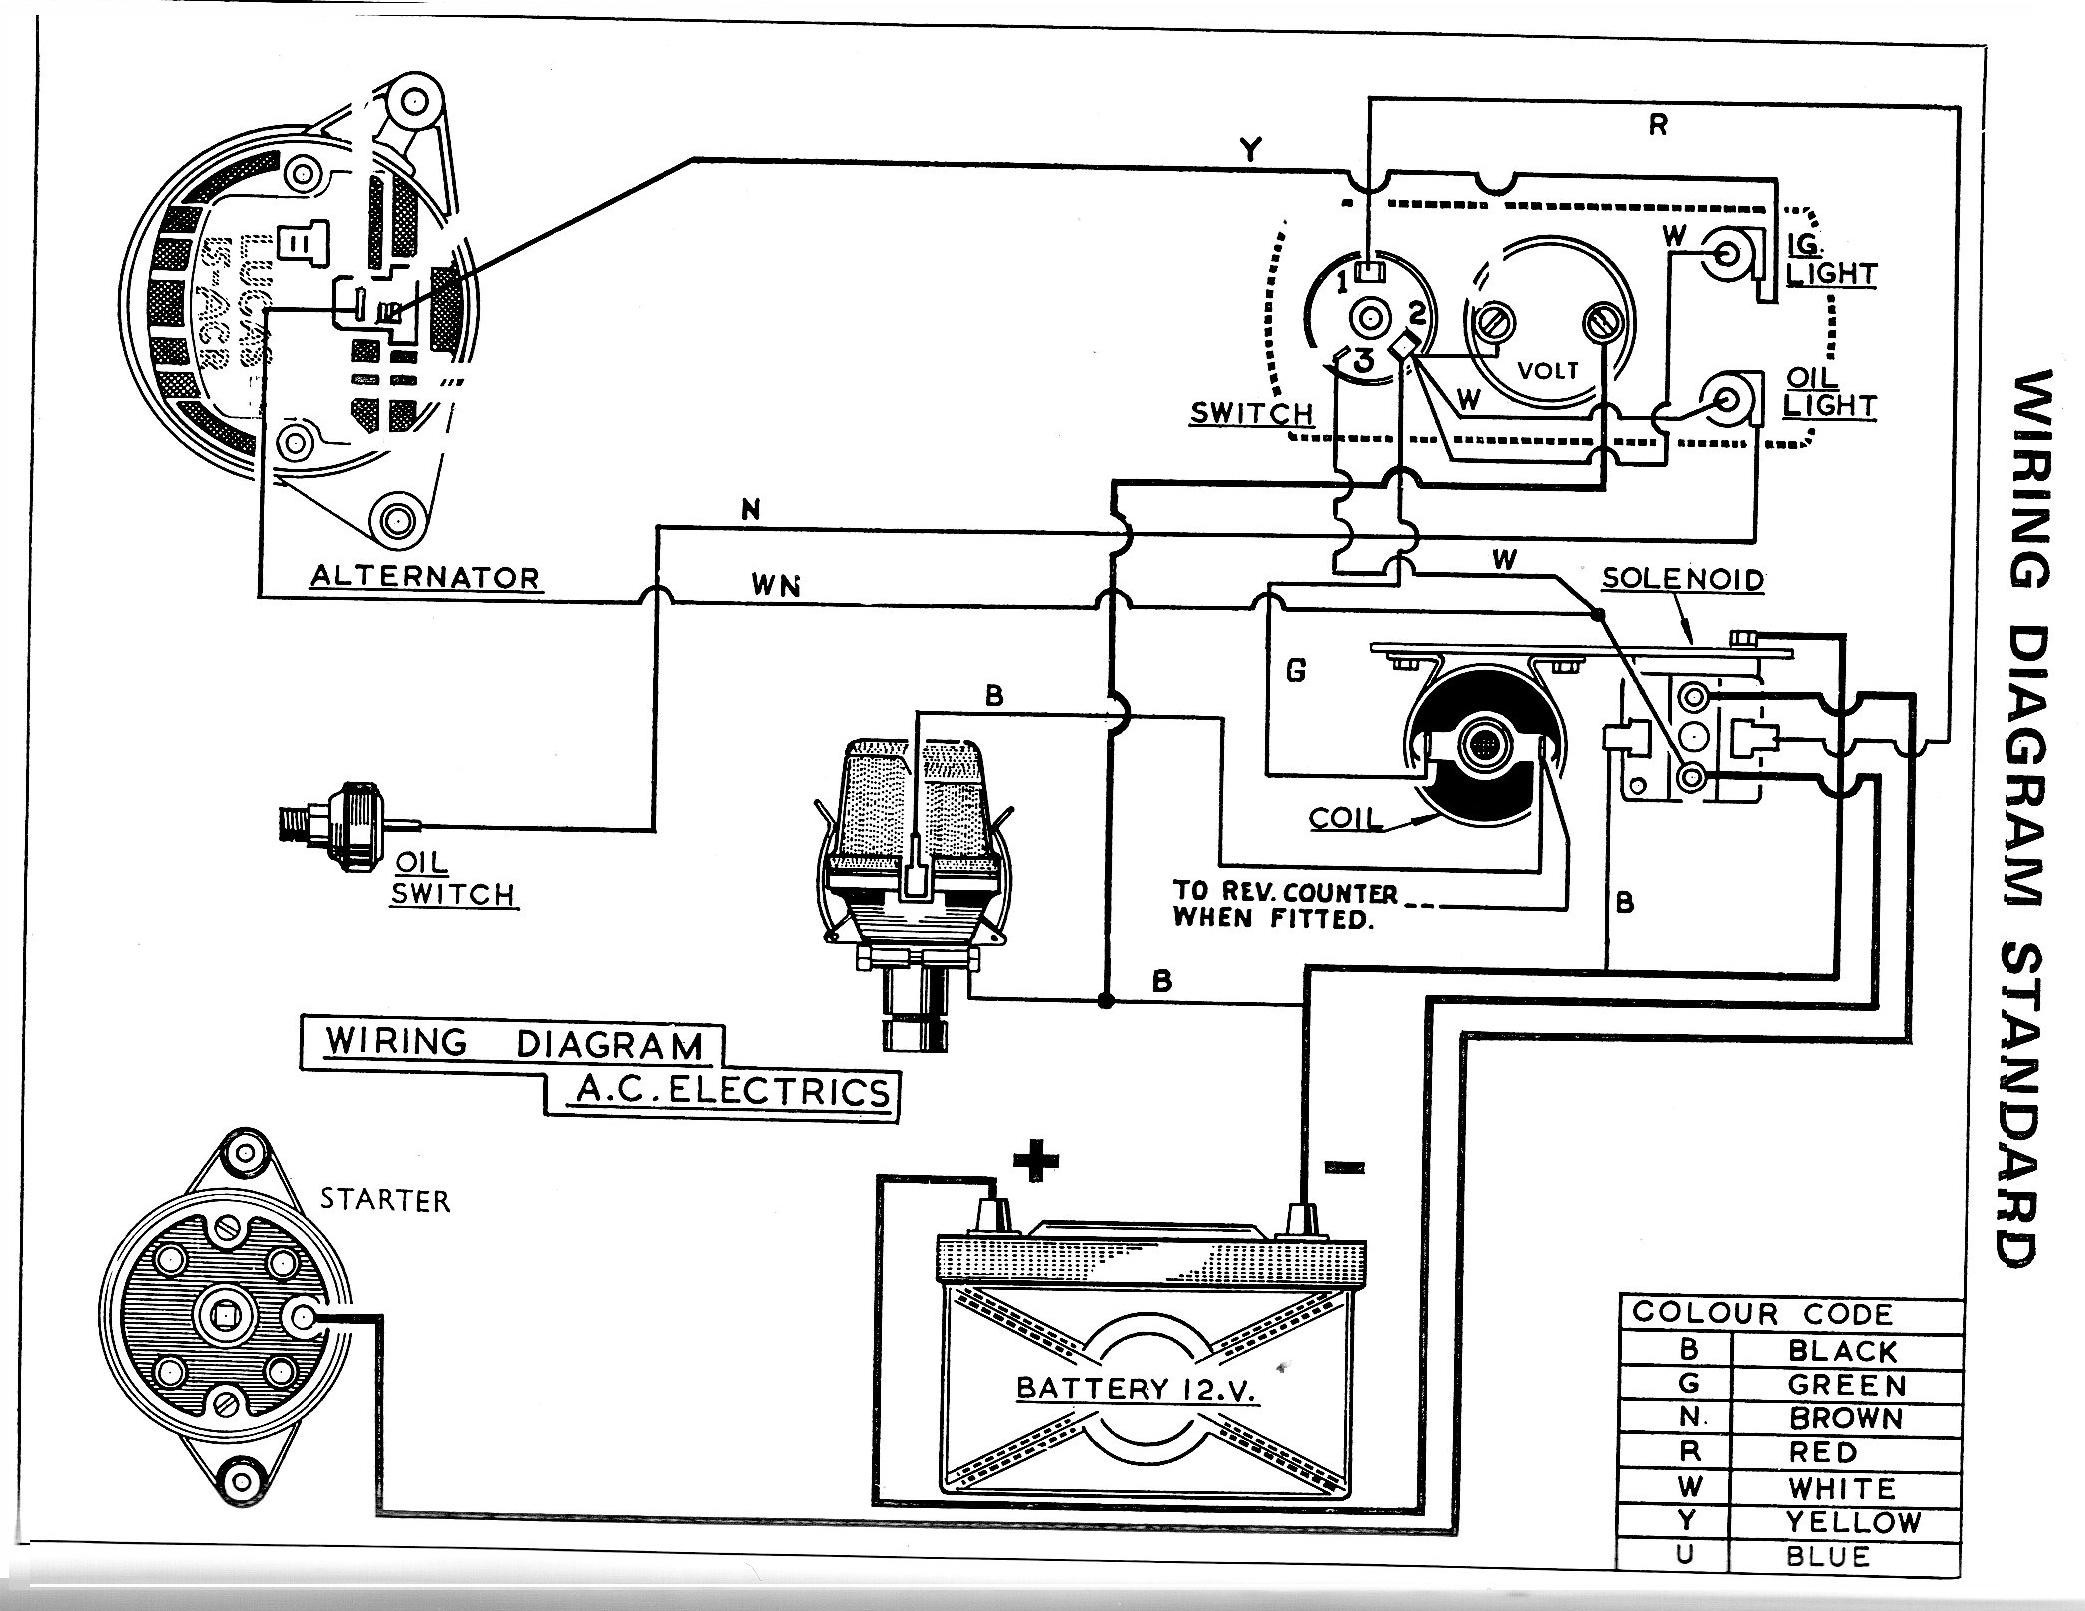 Wiring Diagram For Ford Alternator With Internal Regulator